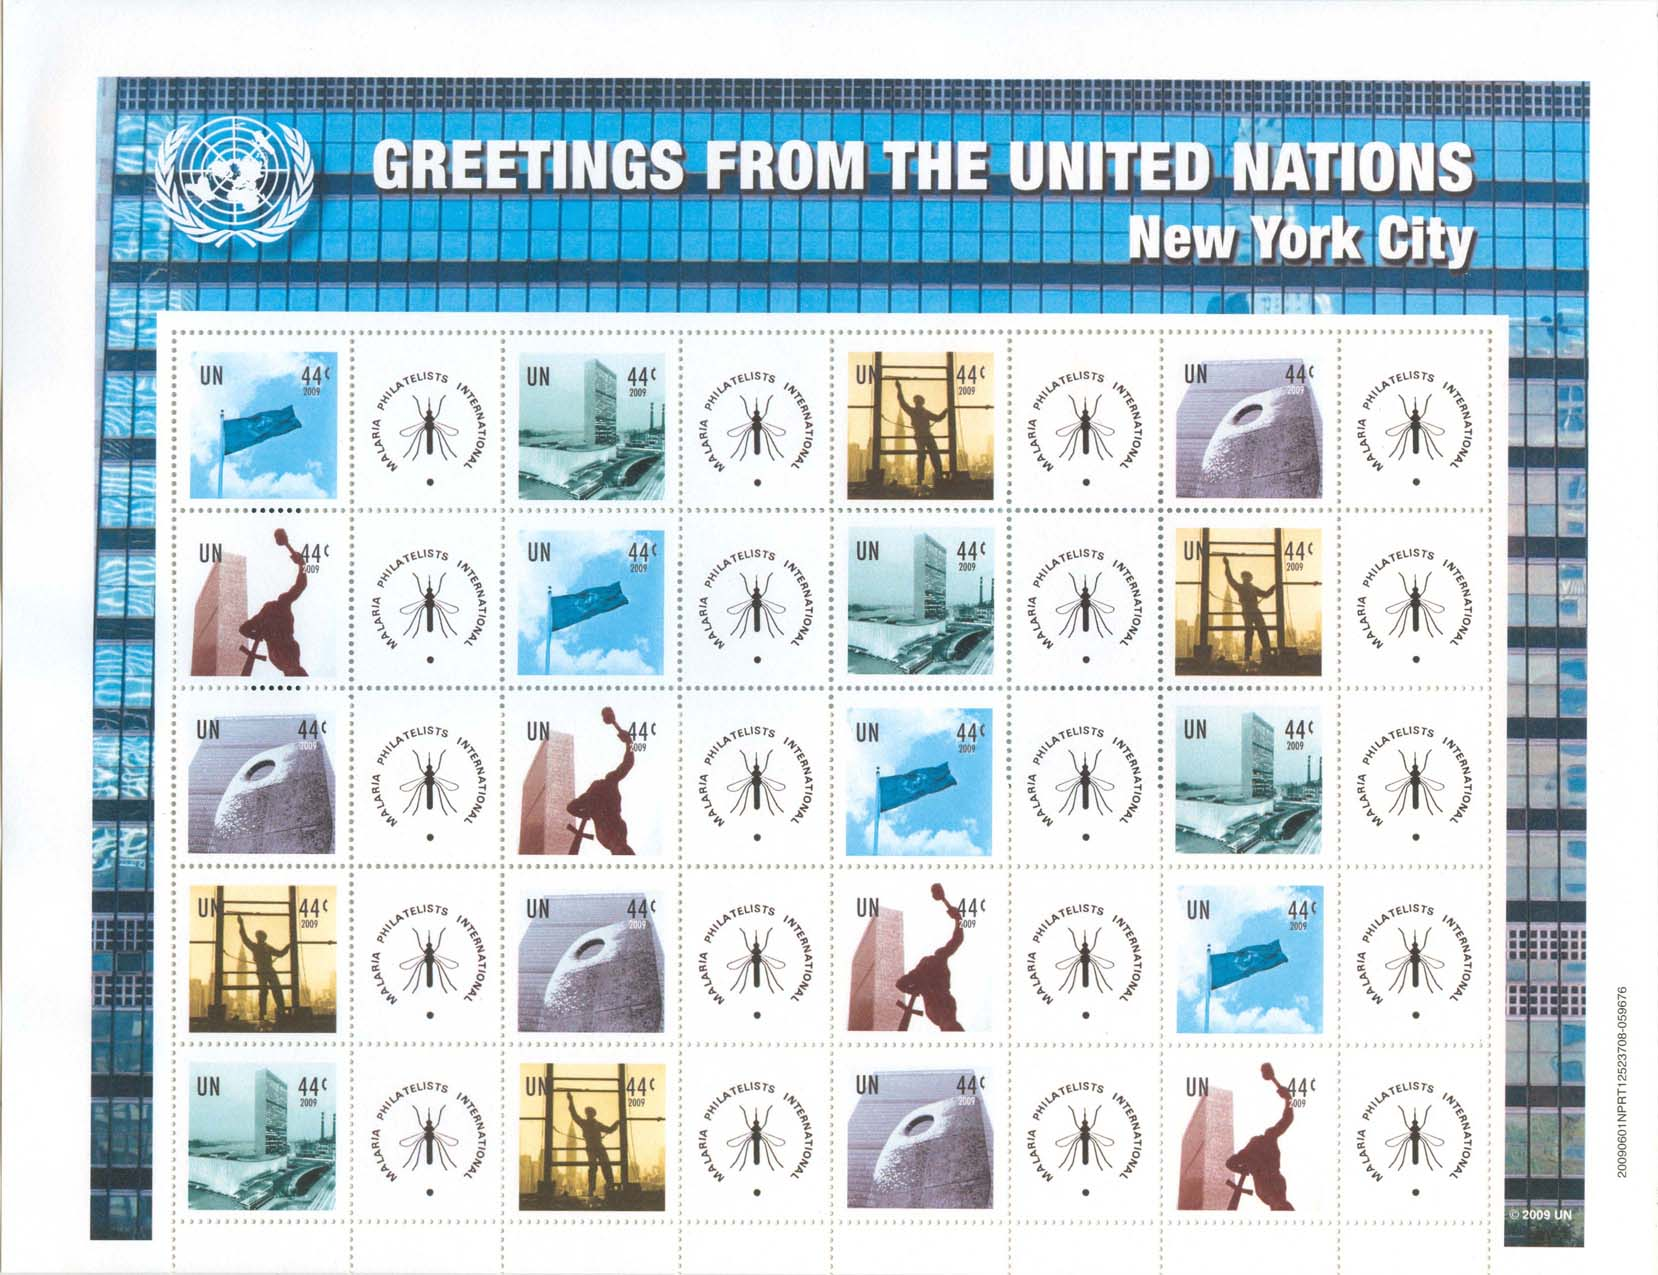 United Nations Personalized Sheet With MPI Logo - Issued June 5th, 2009